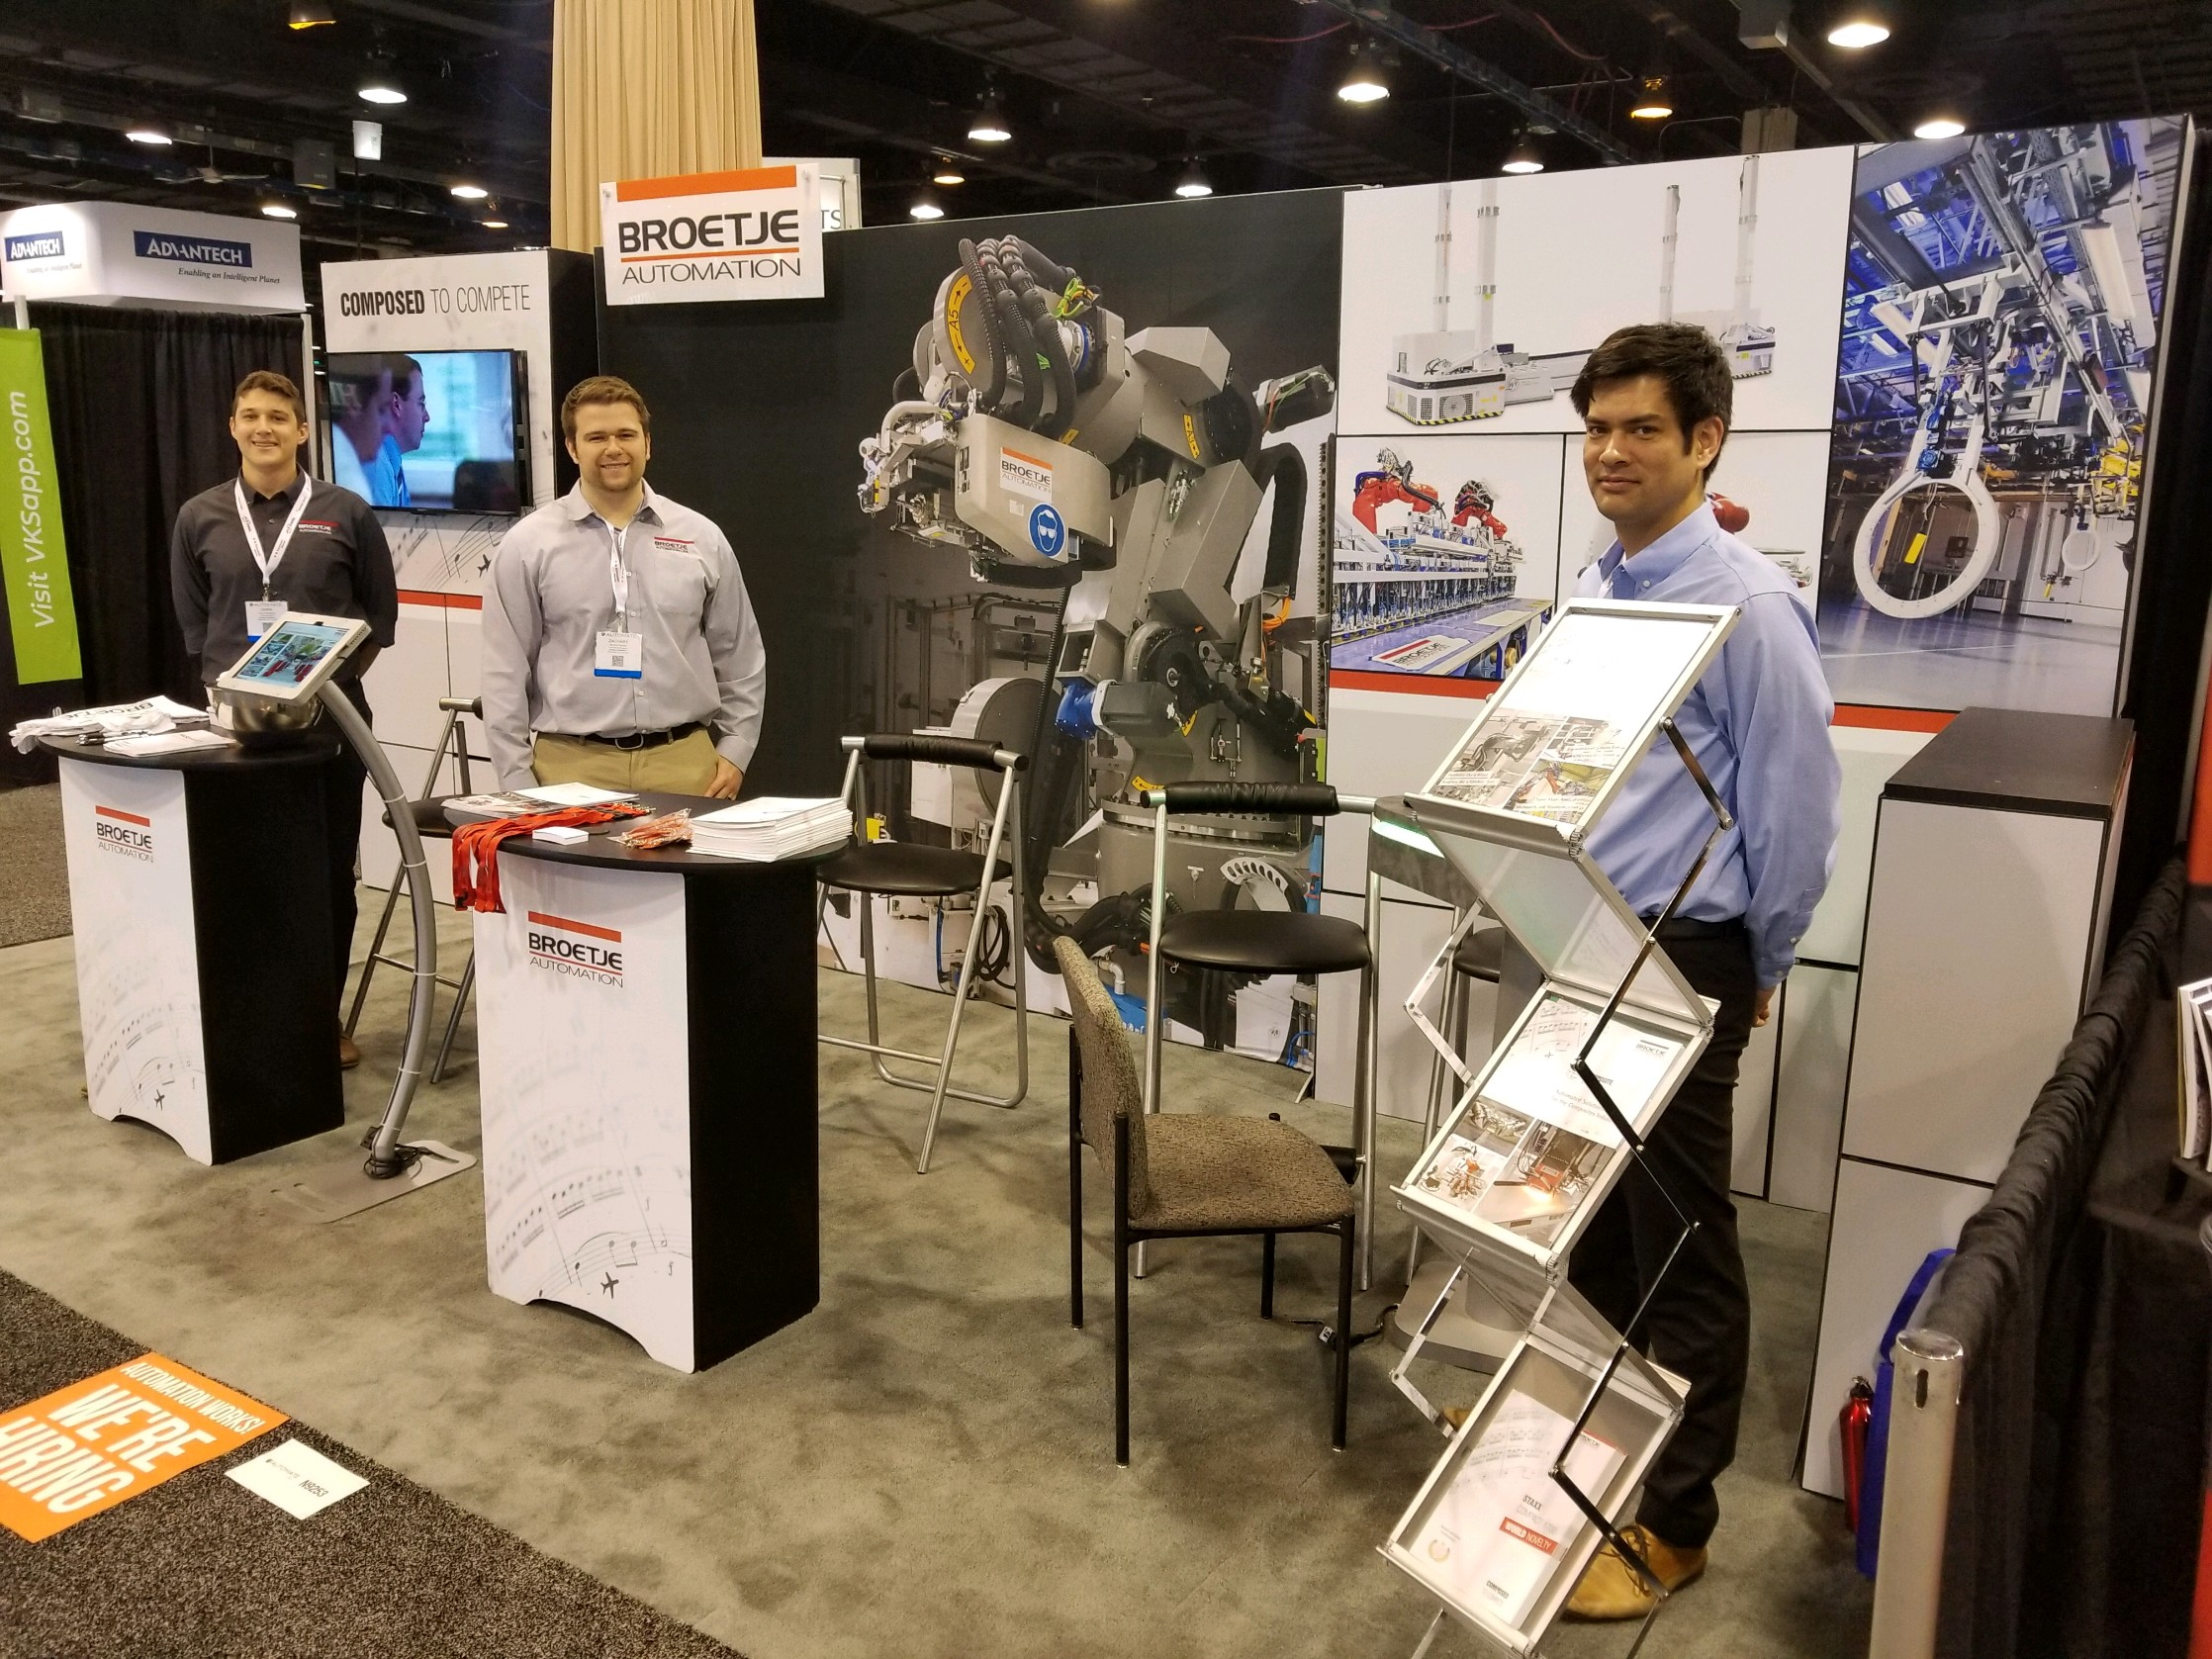 Broetje-Automation showcases its automation and robotic product portfolio at Automate 2019 in Chicago.